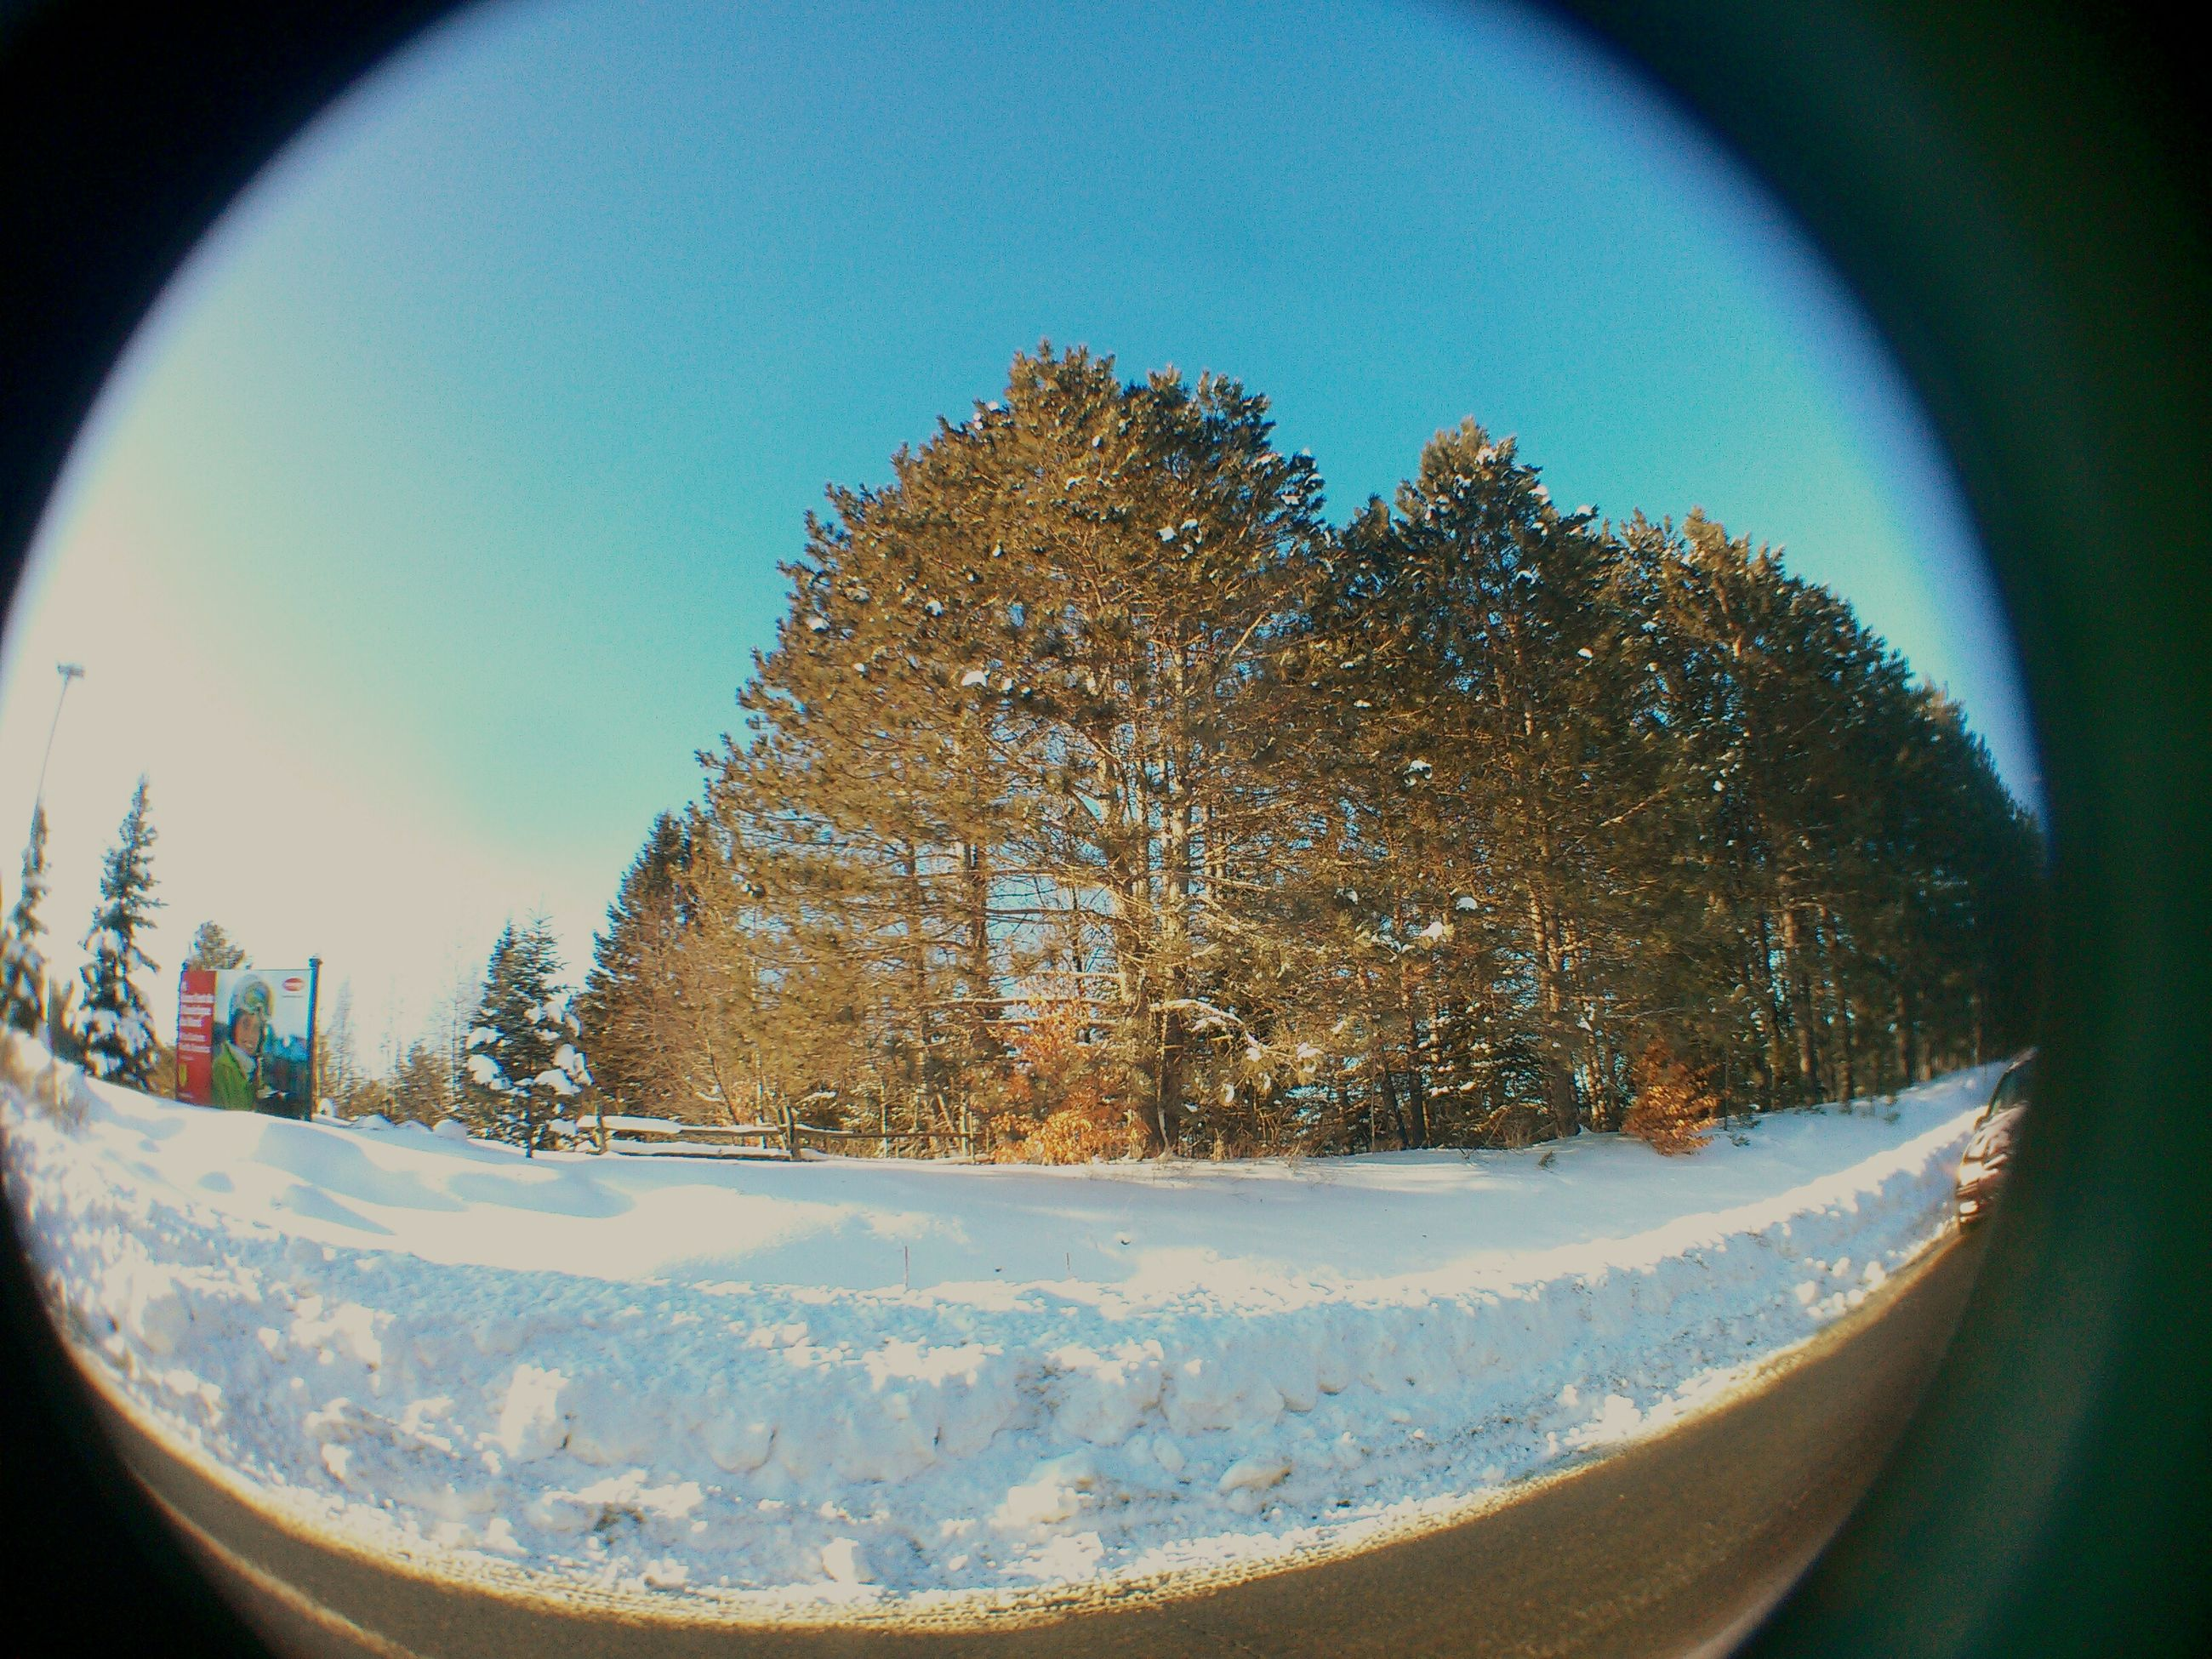 snow, winter, cold temperature, season, tree, transportation, weather, car, road, sky, glass - material, covering, window, land vehicle, nature, frozen, mode of transport, landscape, transparent, street